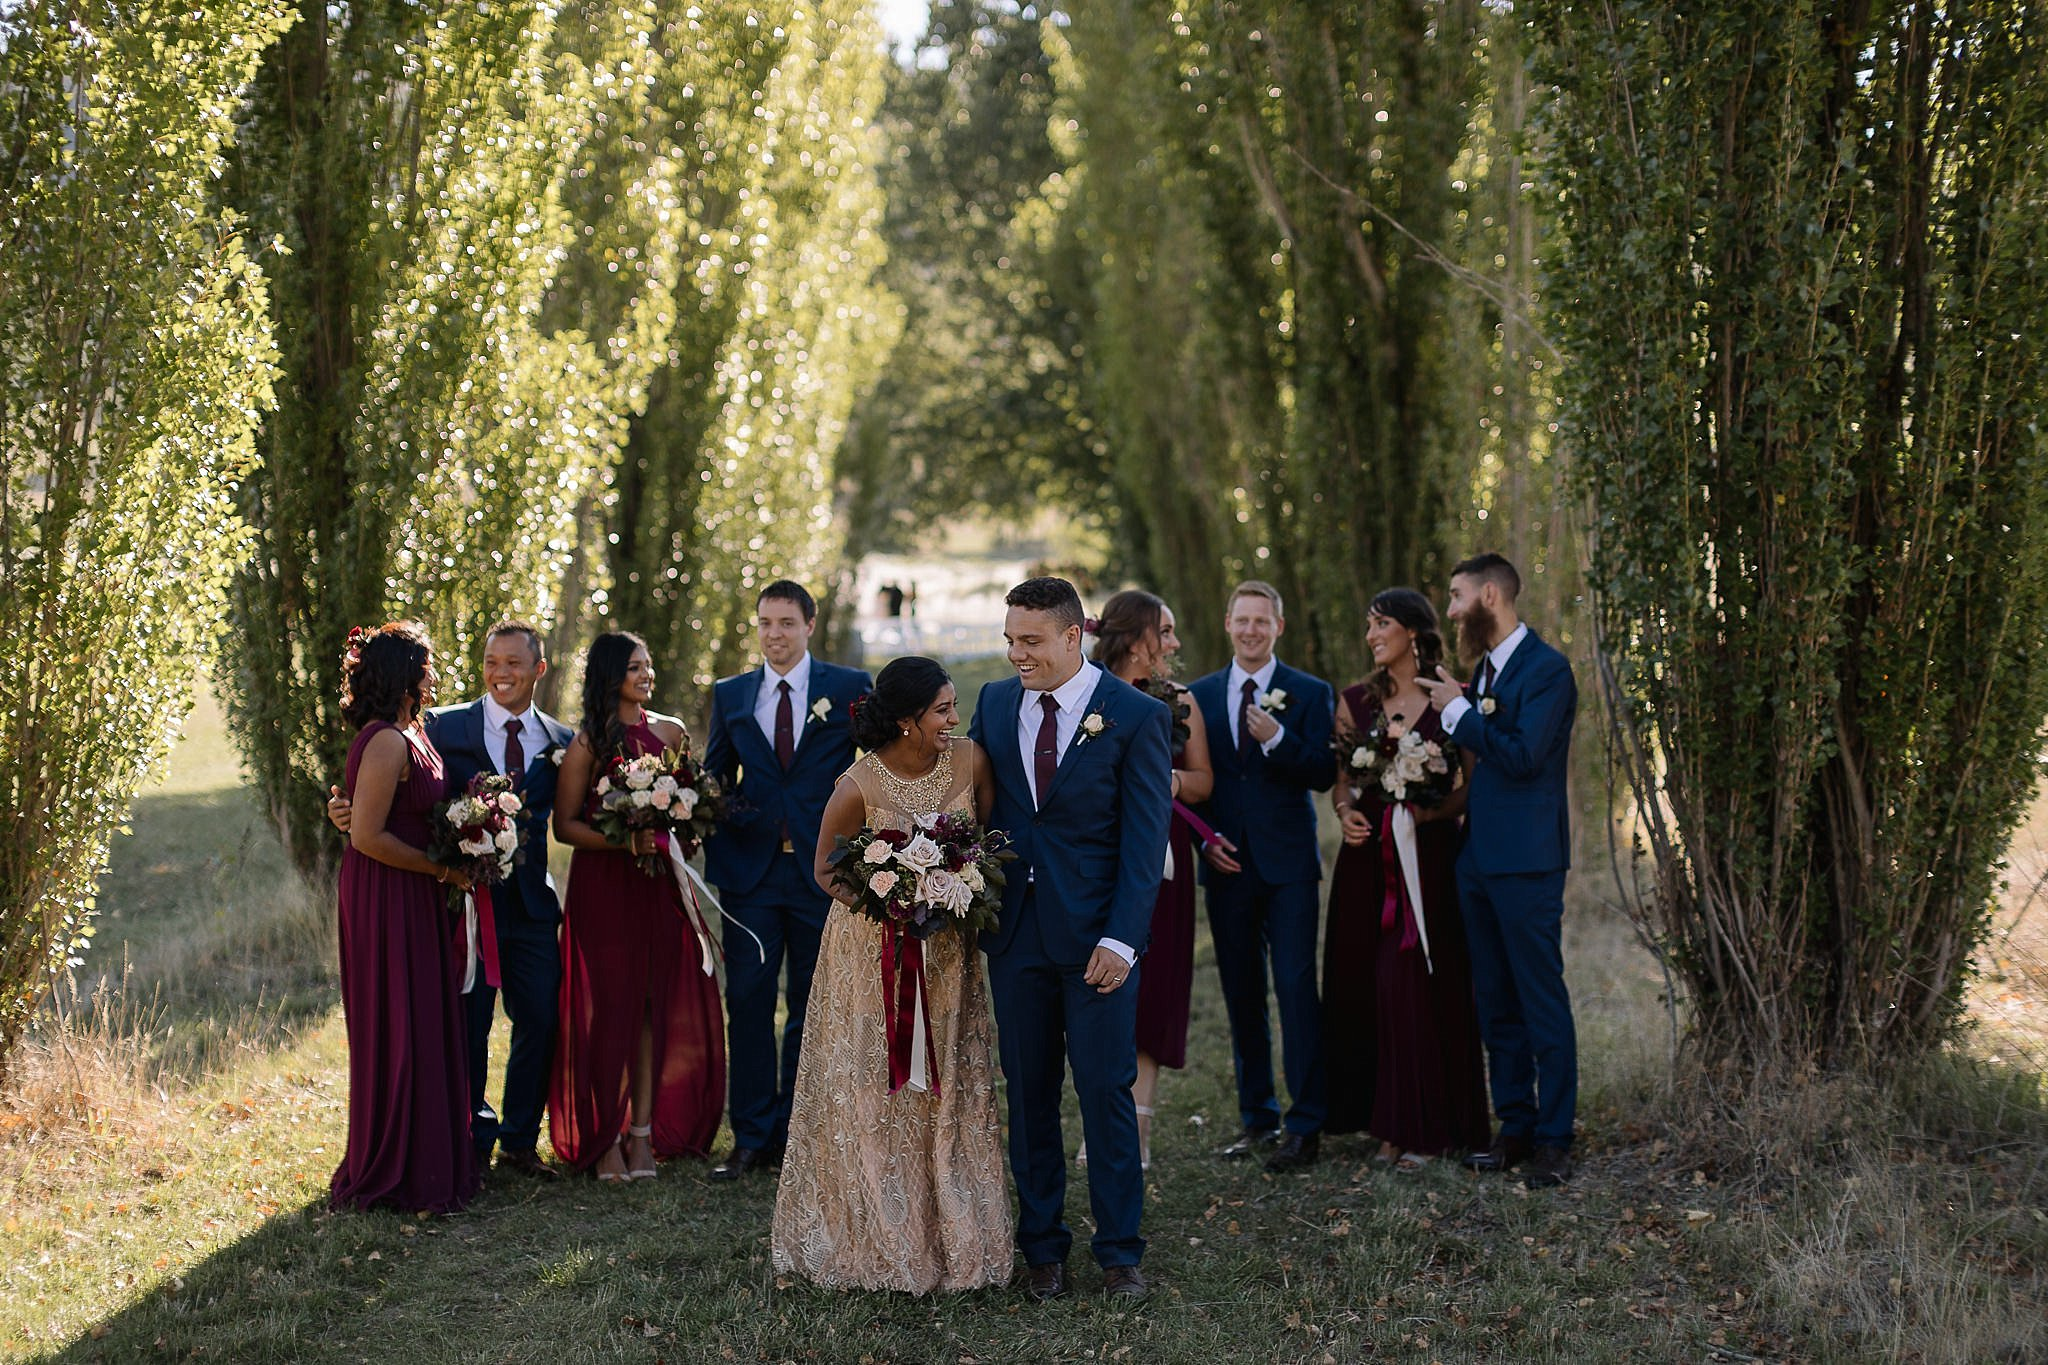 Canberra Photography,Keepsakephoto by the Keeffes,Lake George Winery,lilygrace flowers,ACT wedding photographer,ACT weddings,Canberra Wedding Photographer,Canberra Wedding Photography,canberra weddings,destination wedding,